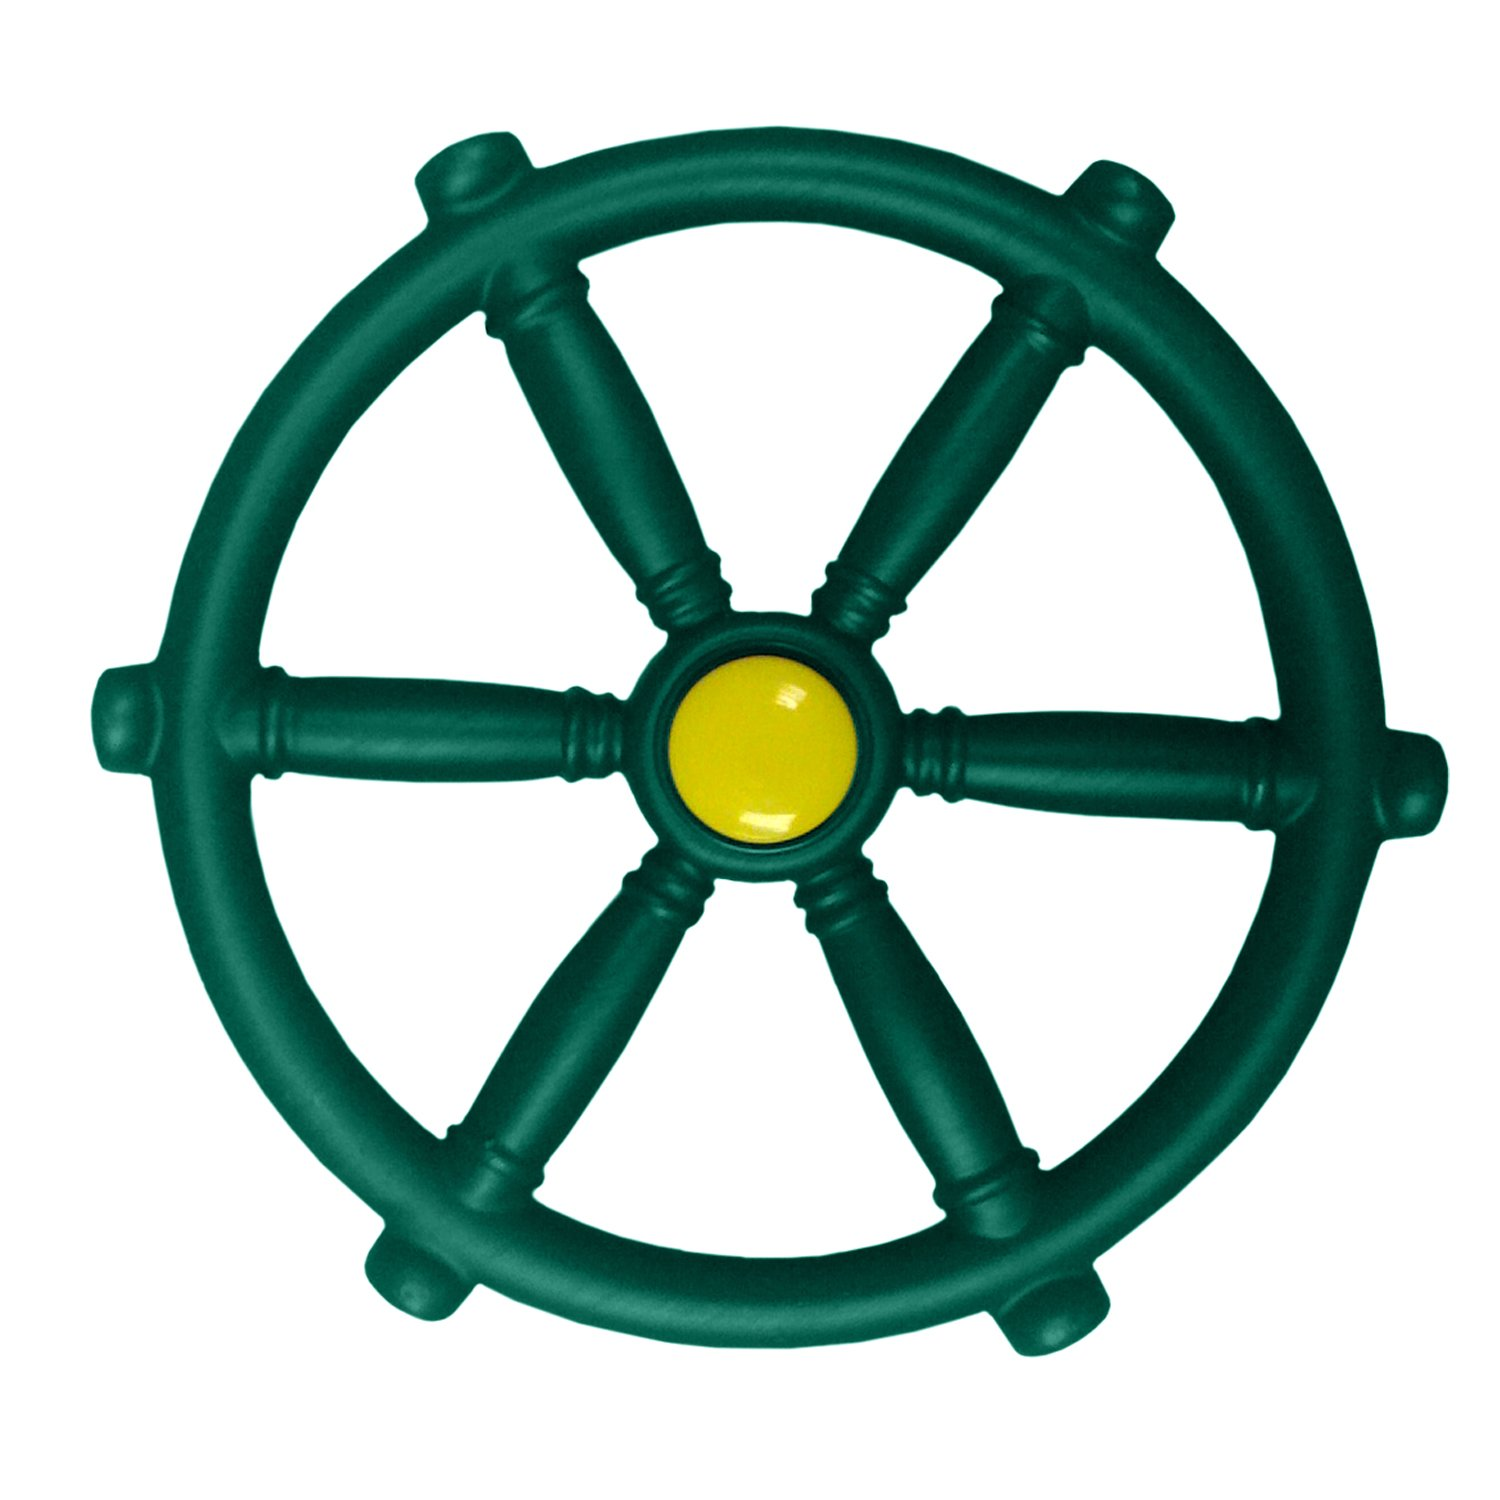 "Swing-N-Slide WS 1524 12"" Pirate Ship Wheel for Swing Sets, Play Sets & Playhouses"